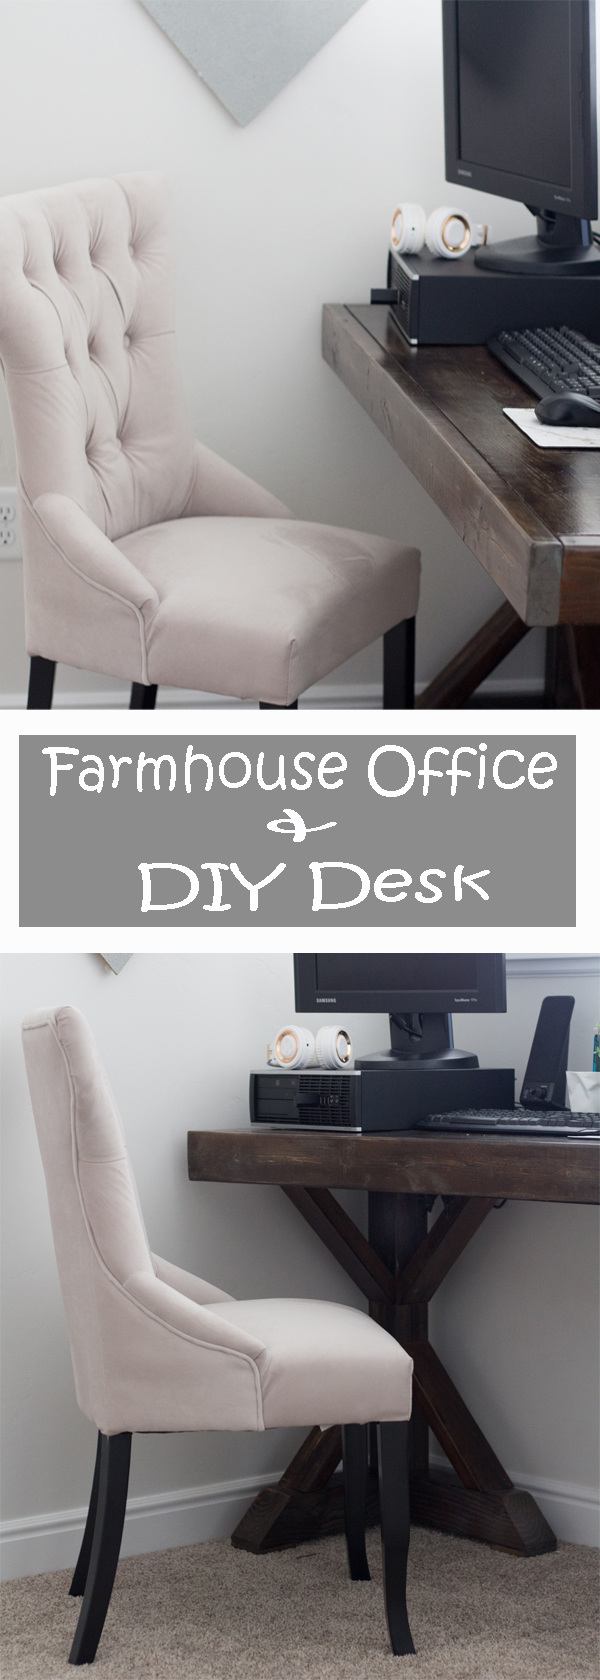 Farmhouse Office and DIY Desk